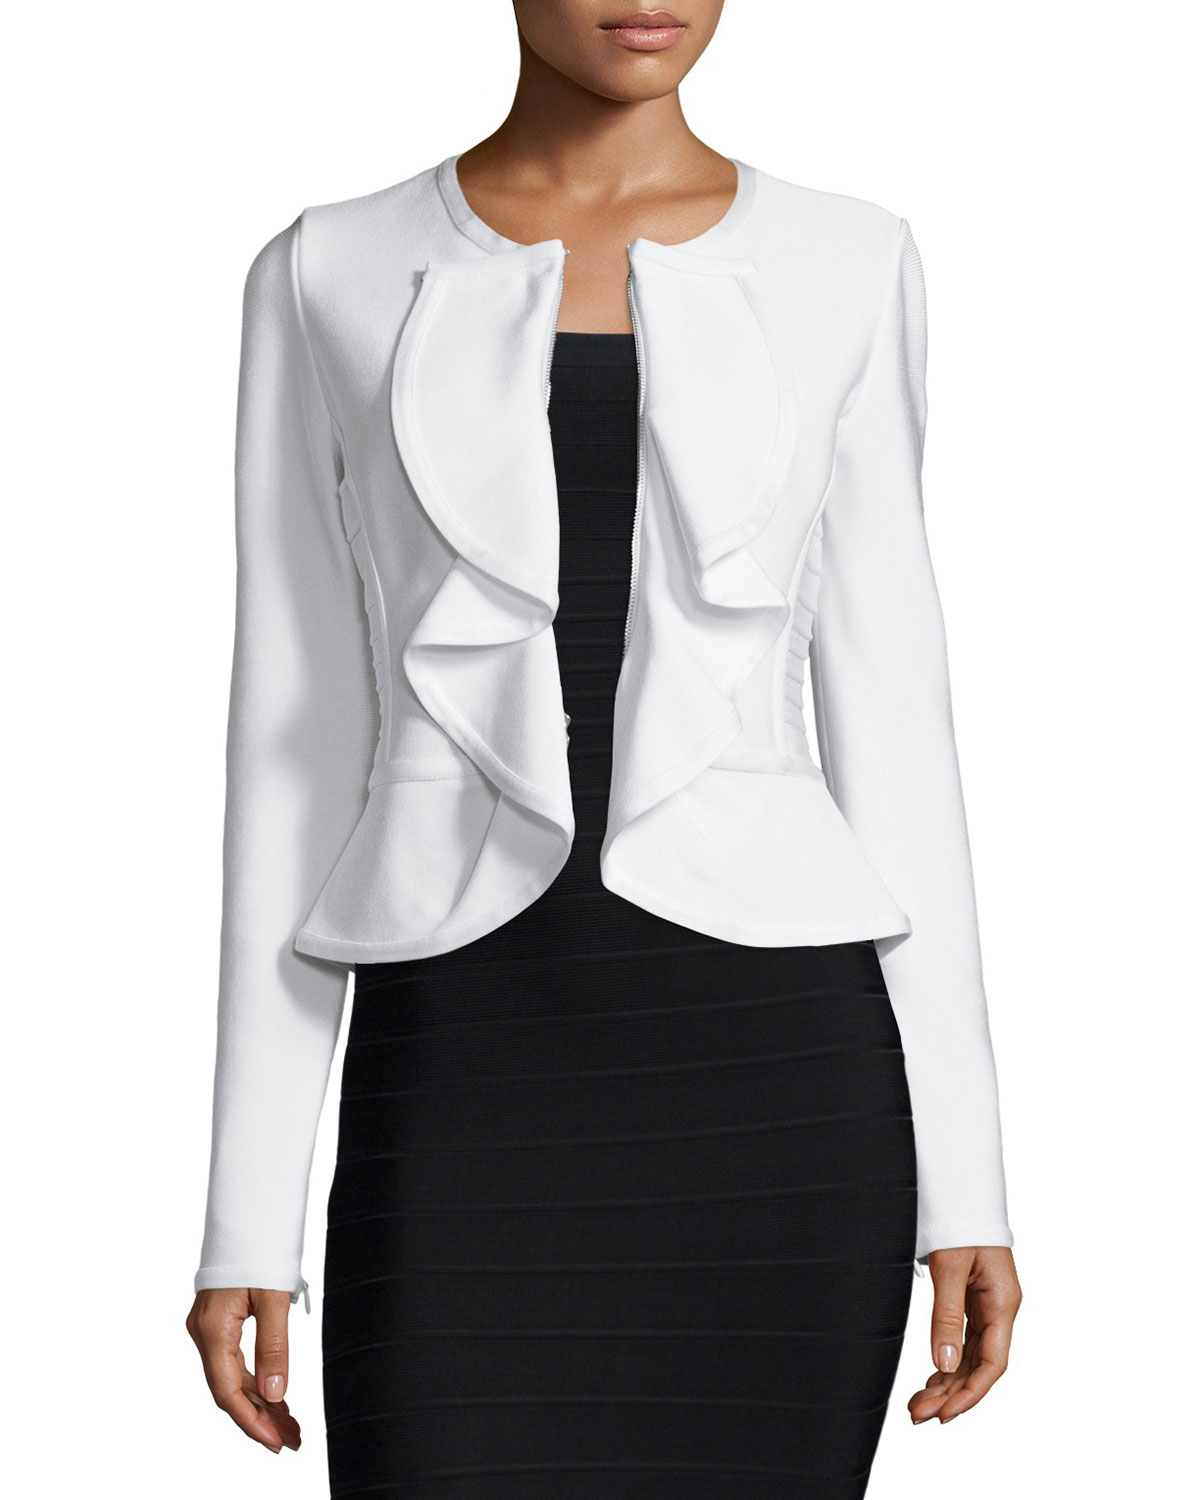 Hervé léger Ruffle-Front Fitted Jacket in White   Lyst